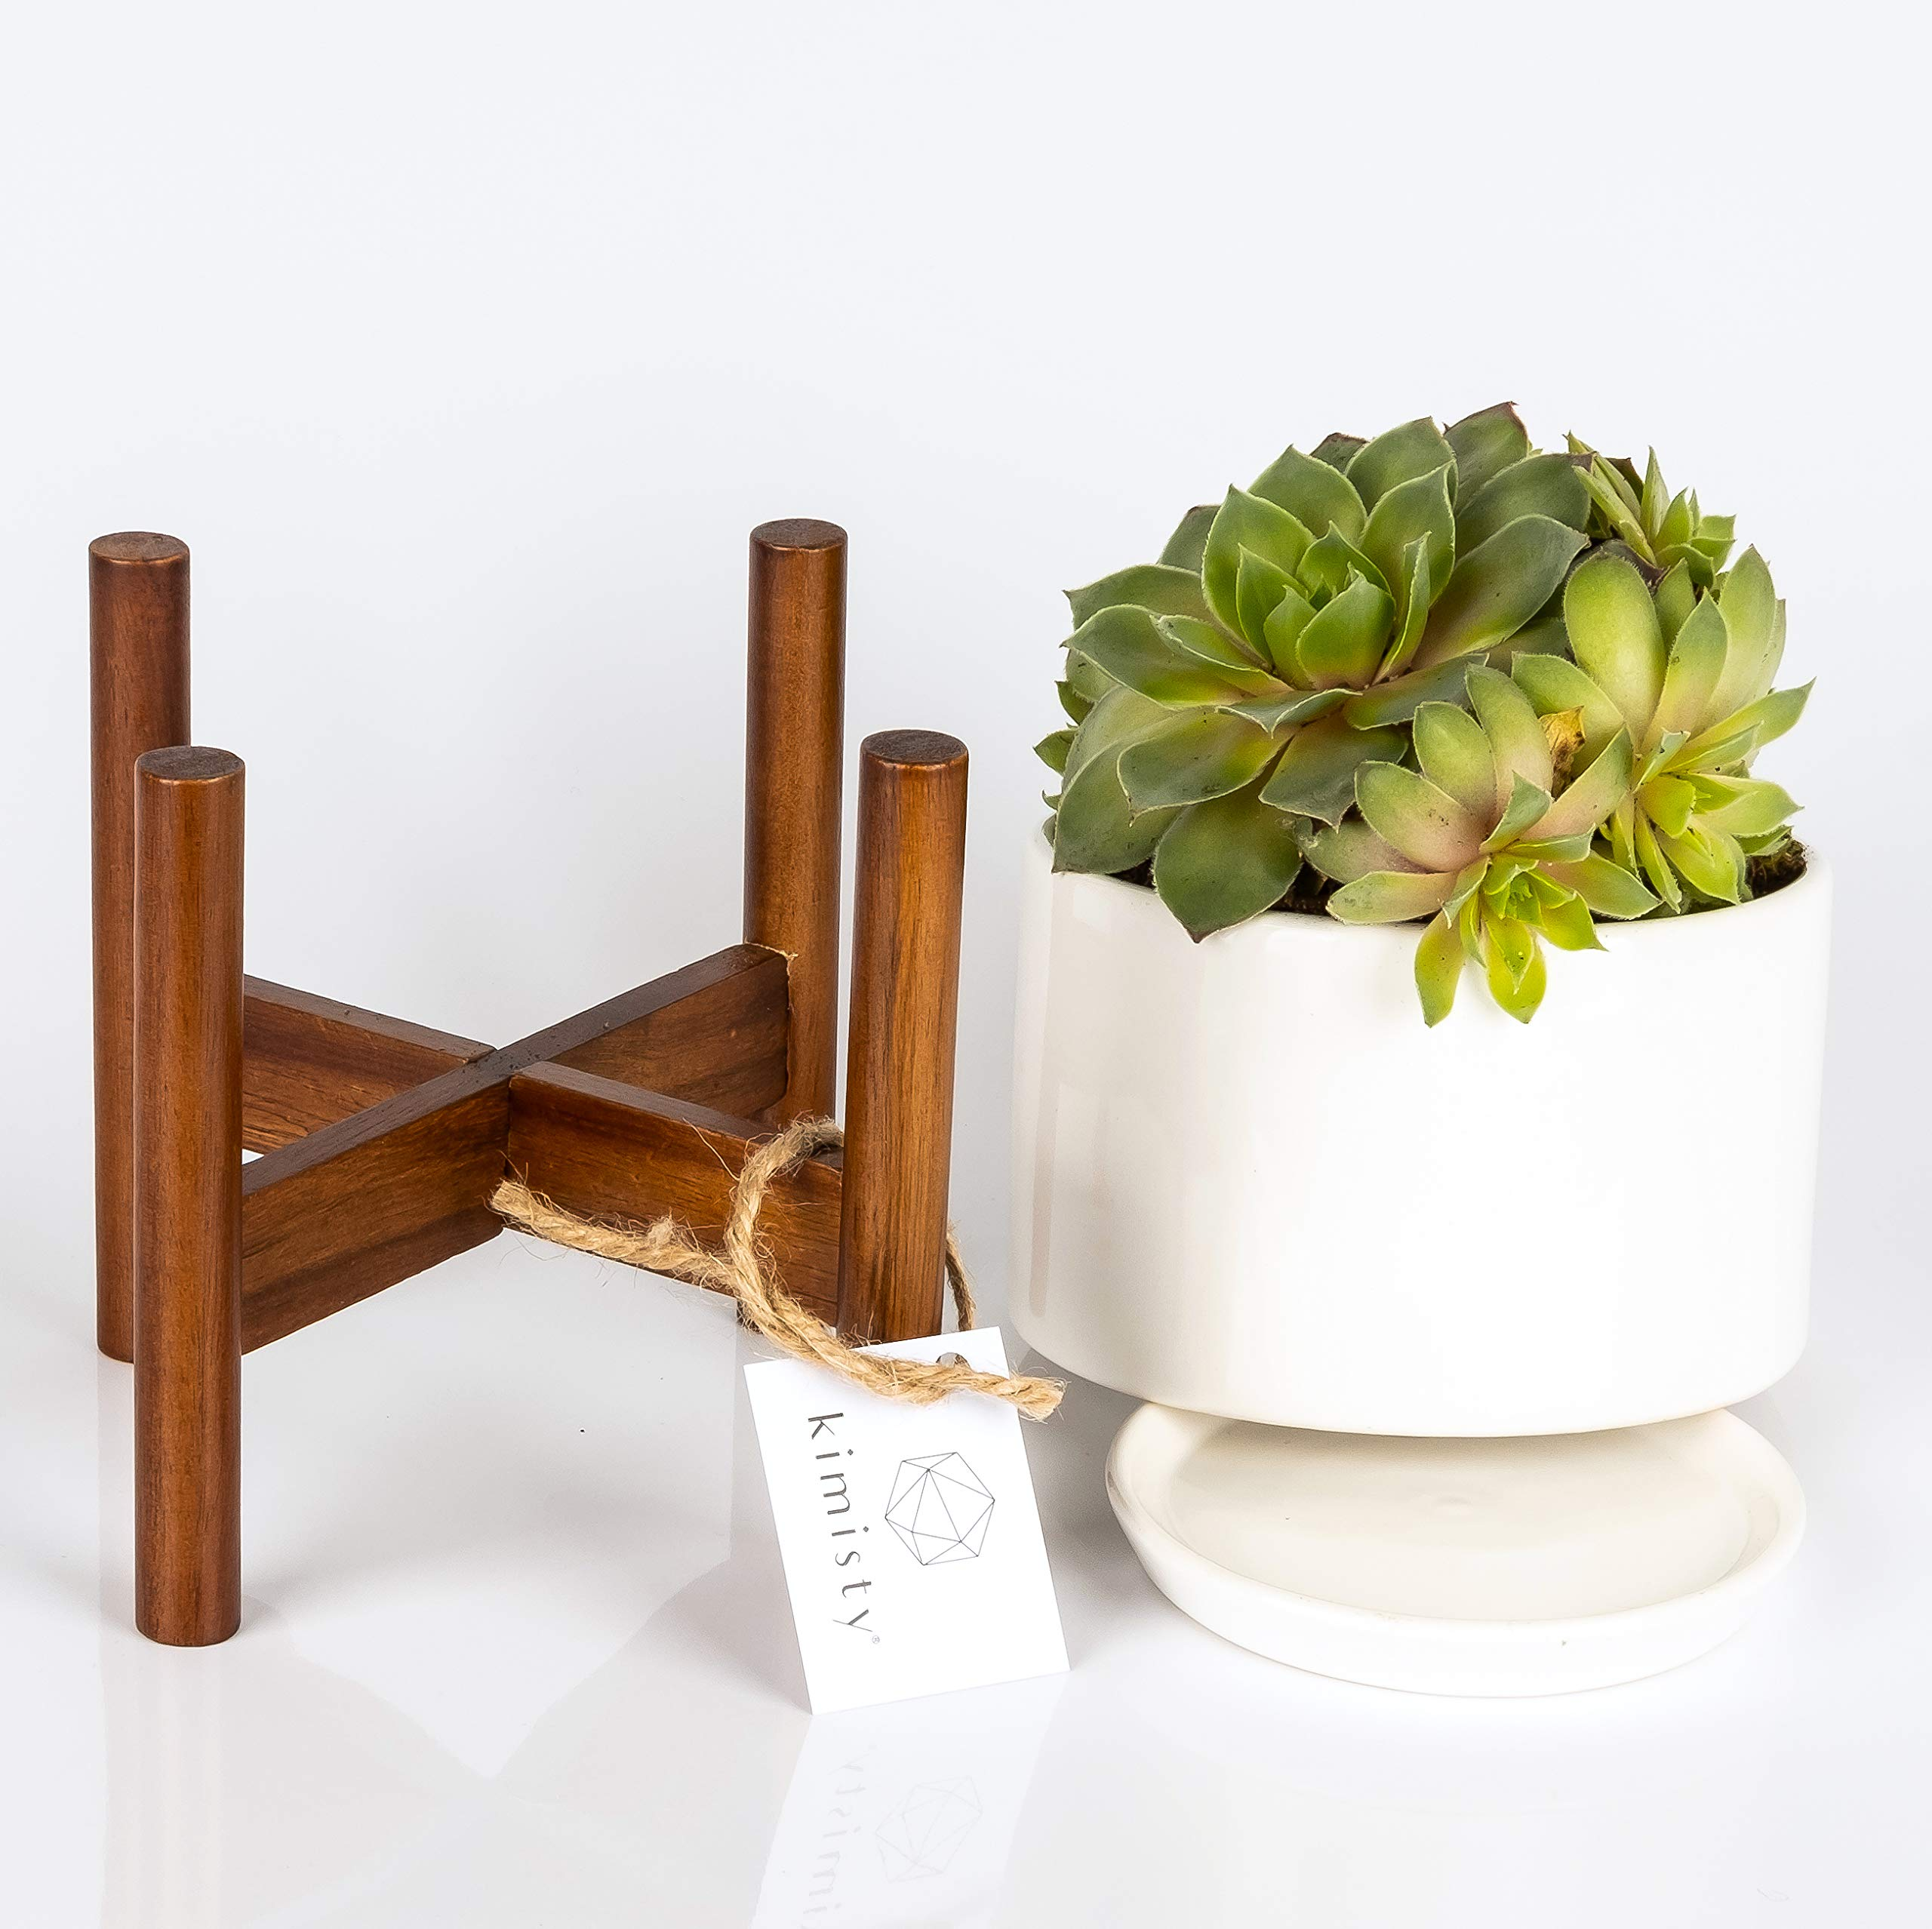 Kimisty Plant Pot, Large Round Succulent Planter, 5 Inch Pot with Wood Stand and Saucer, Round White Planters, Mid Century Décor, Cactus and Plant Container with Drainage, Indoor